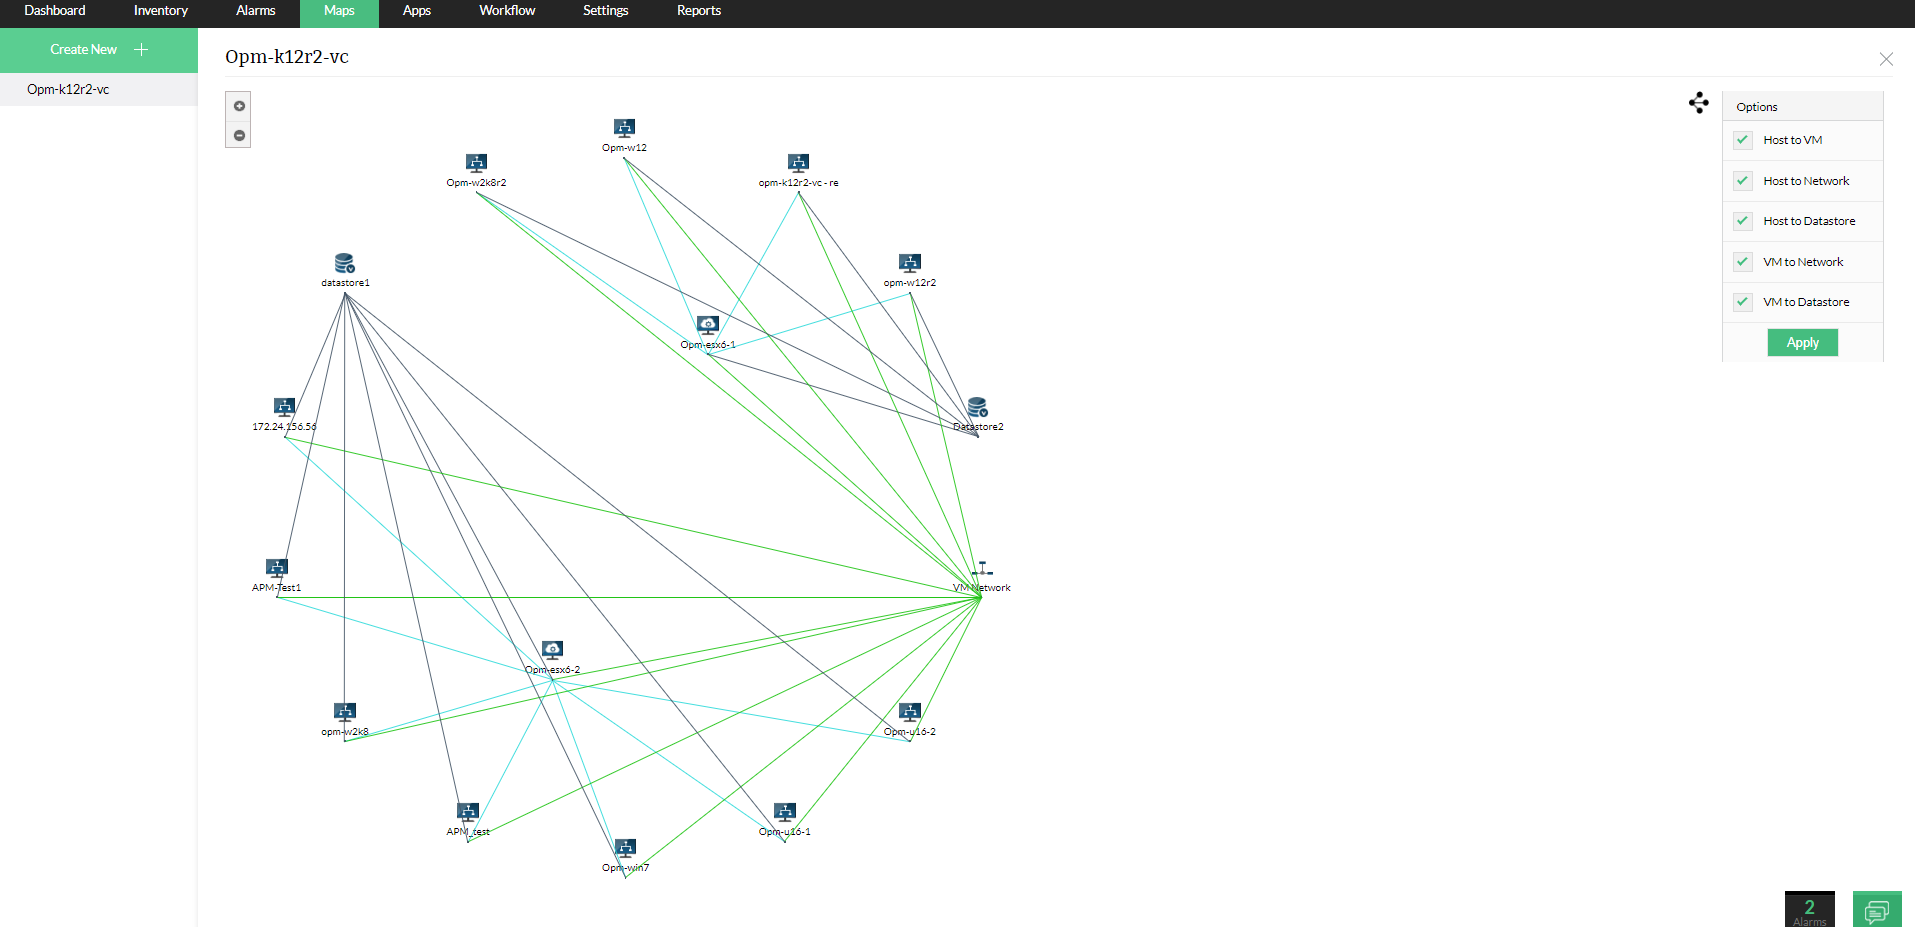 VM relationship mapping- A map displaying the relationship between VMs, networks and datastores | ManageEngine OpManager